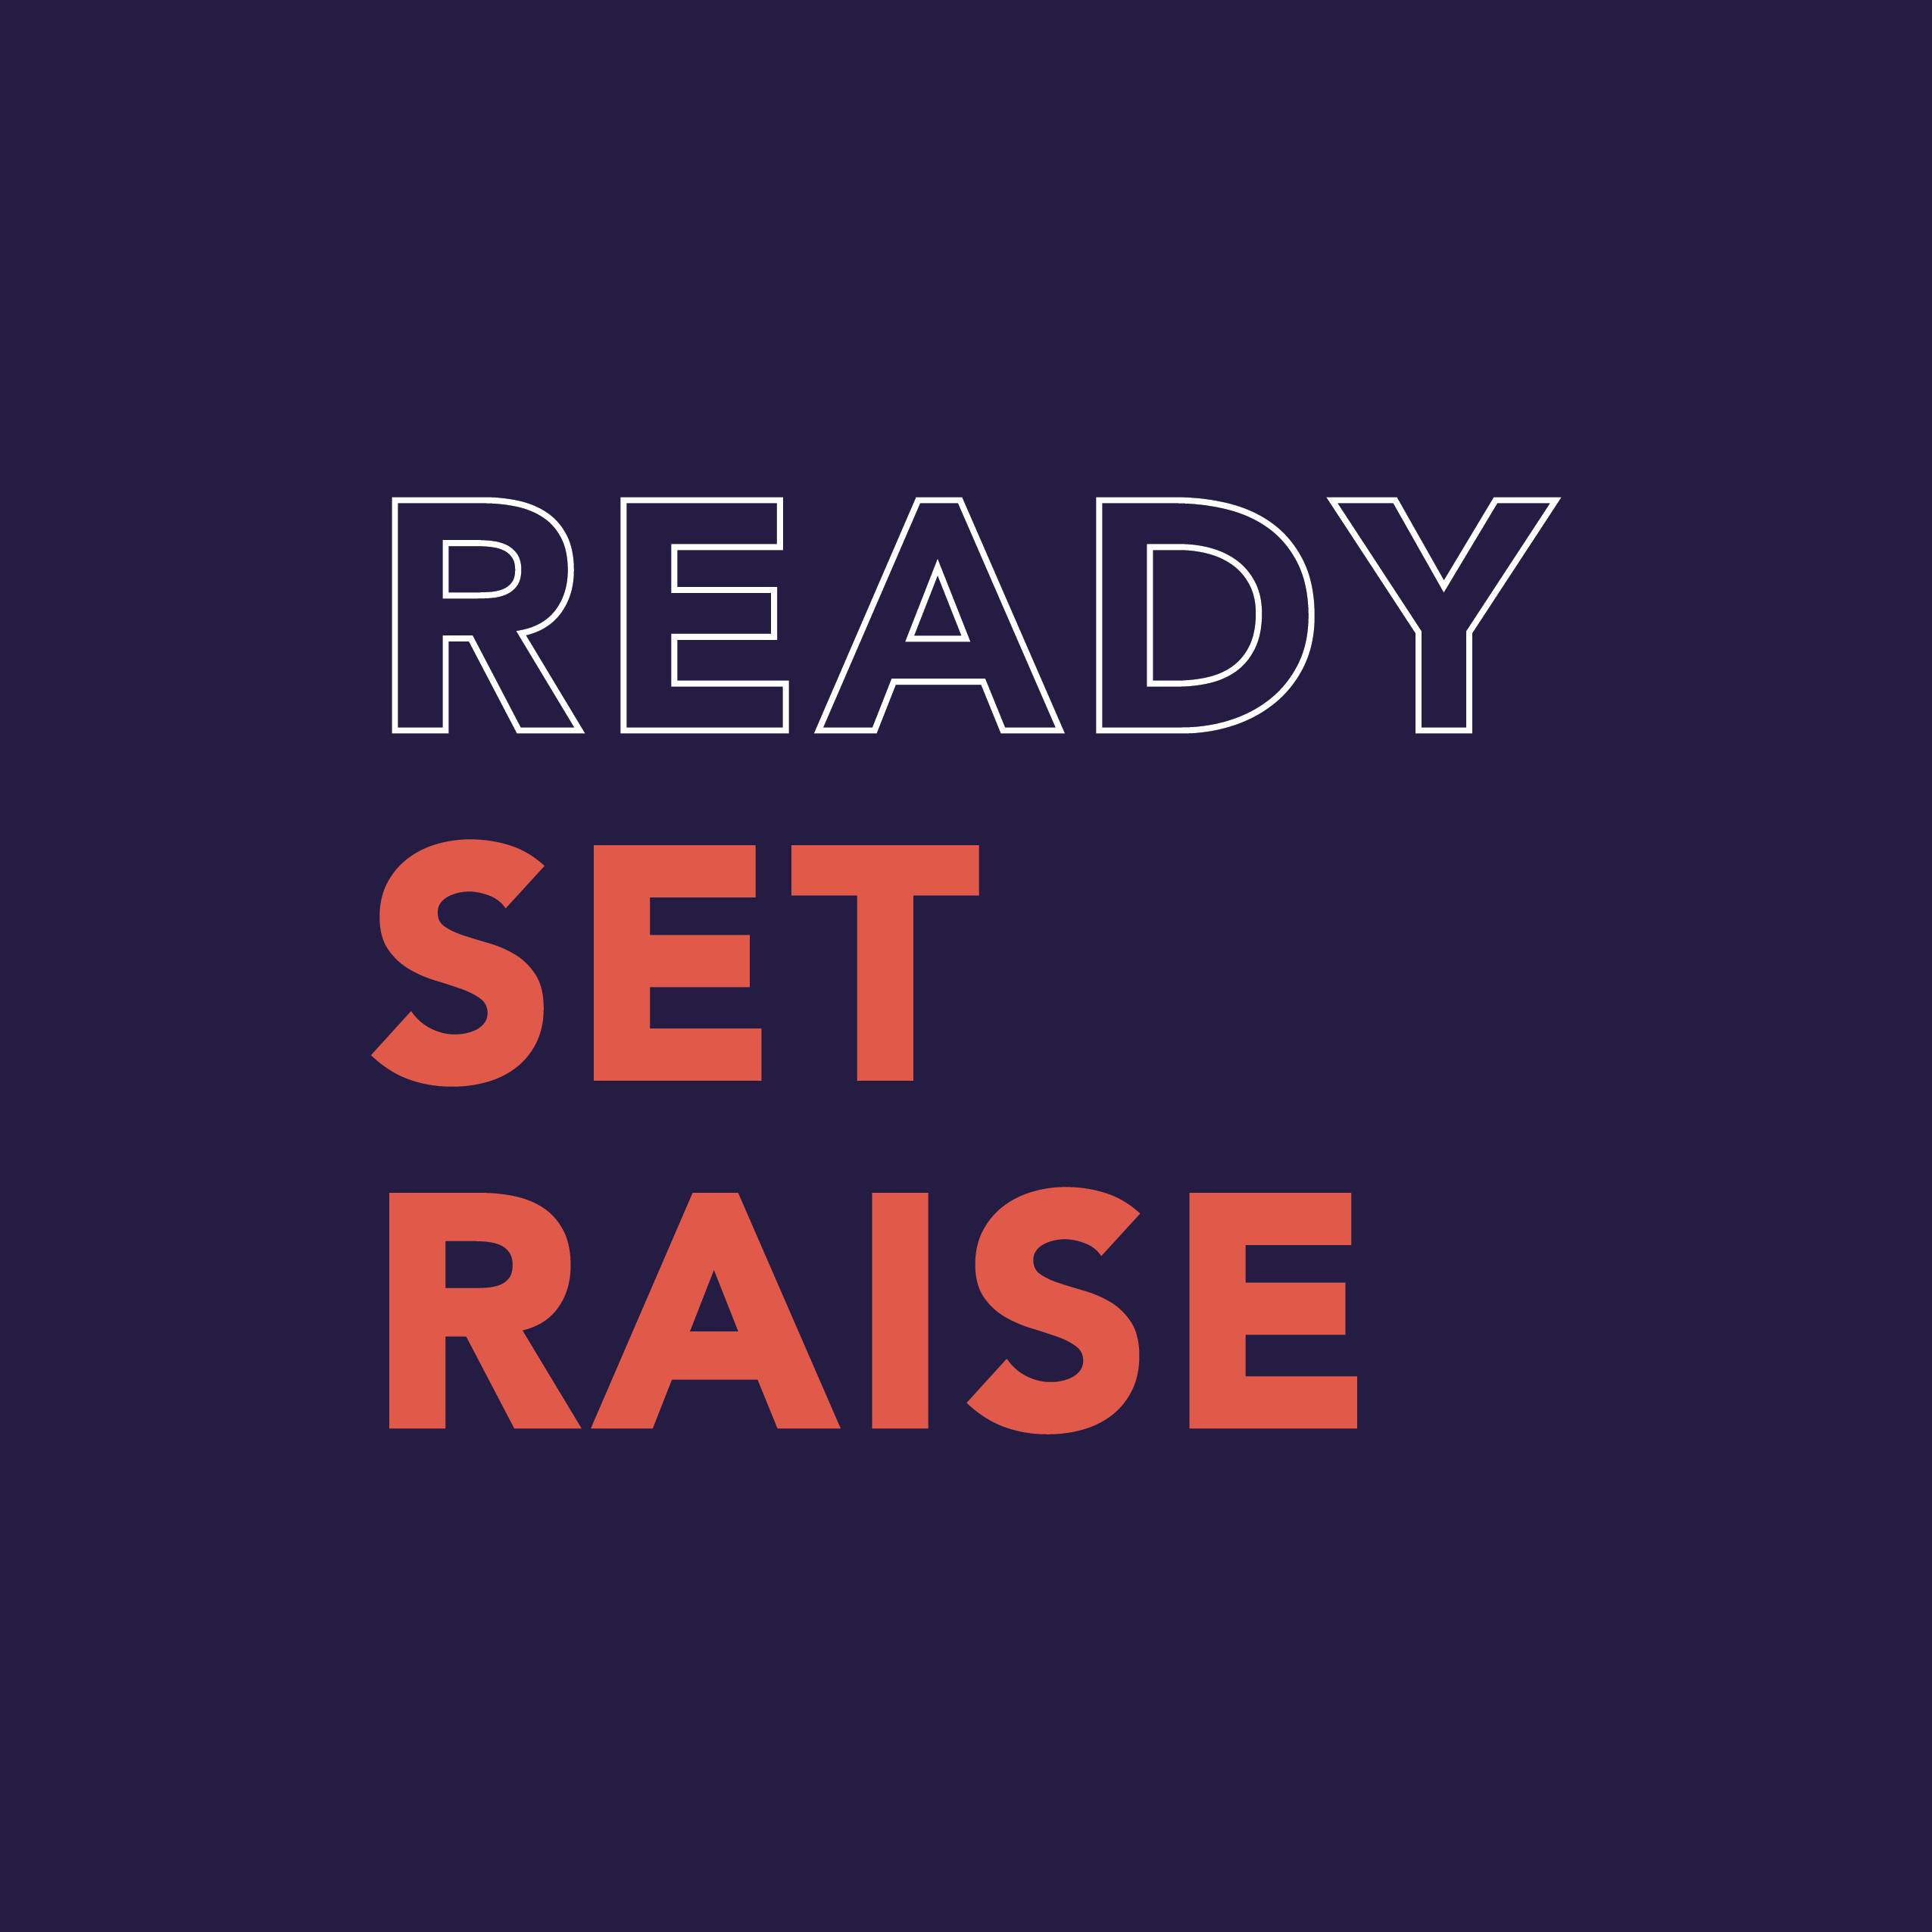 https://femalefounders.org/wp-content/uploads/2019/05/ReadySetRaise_Logo-02.png